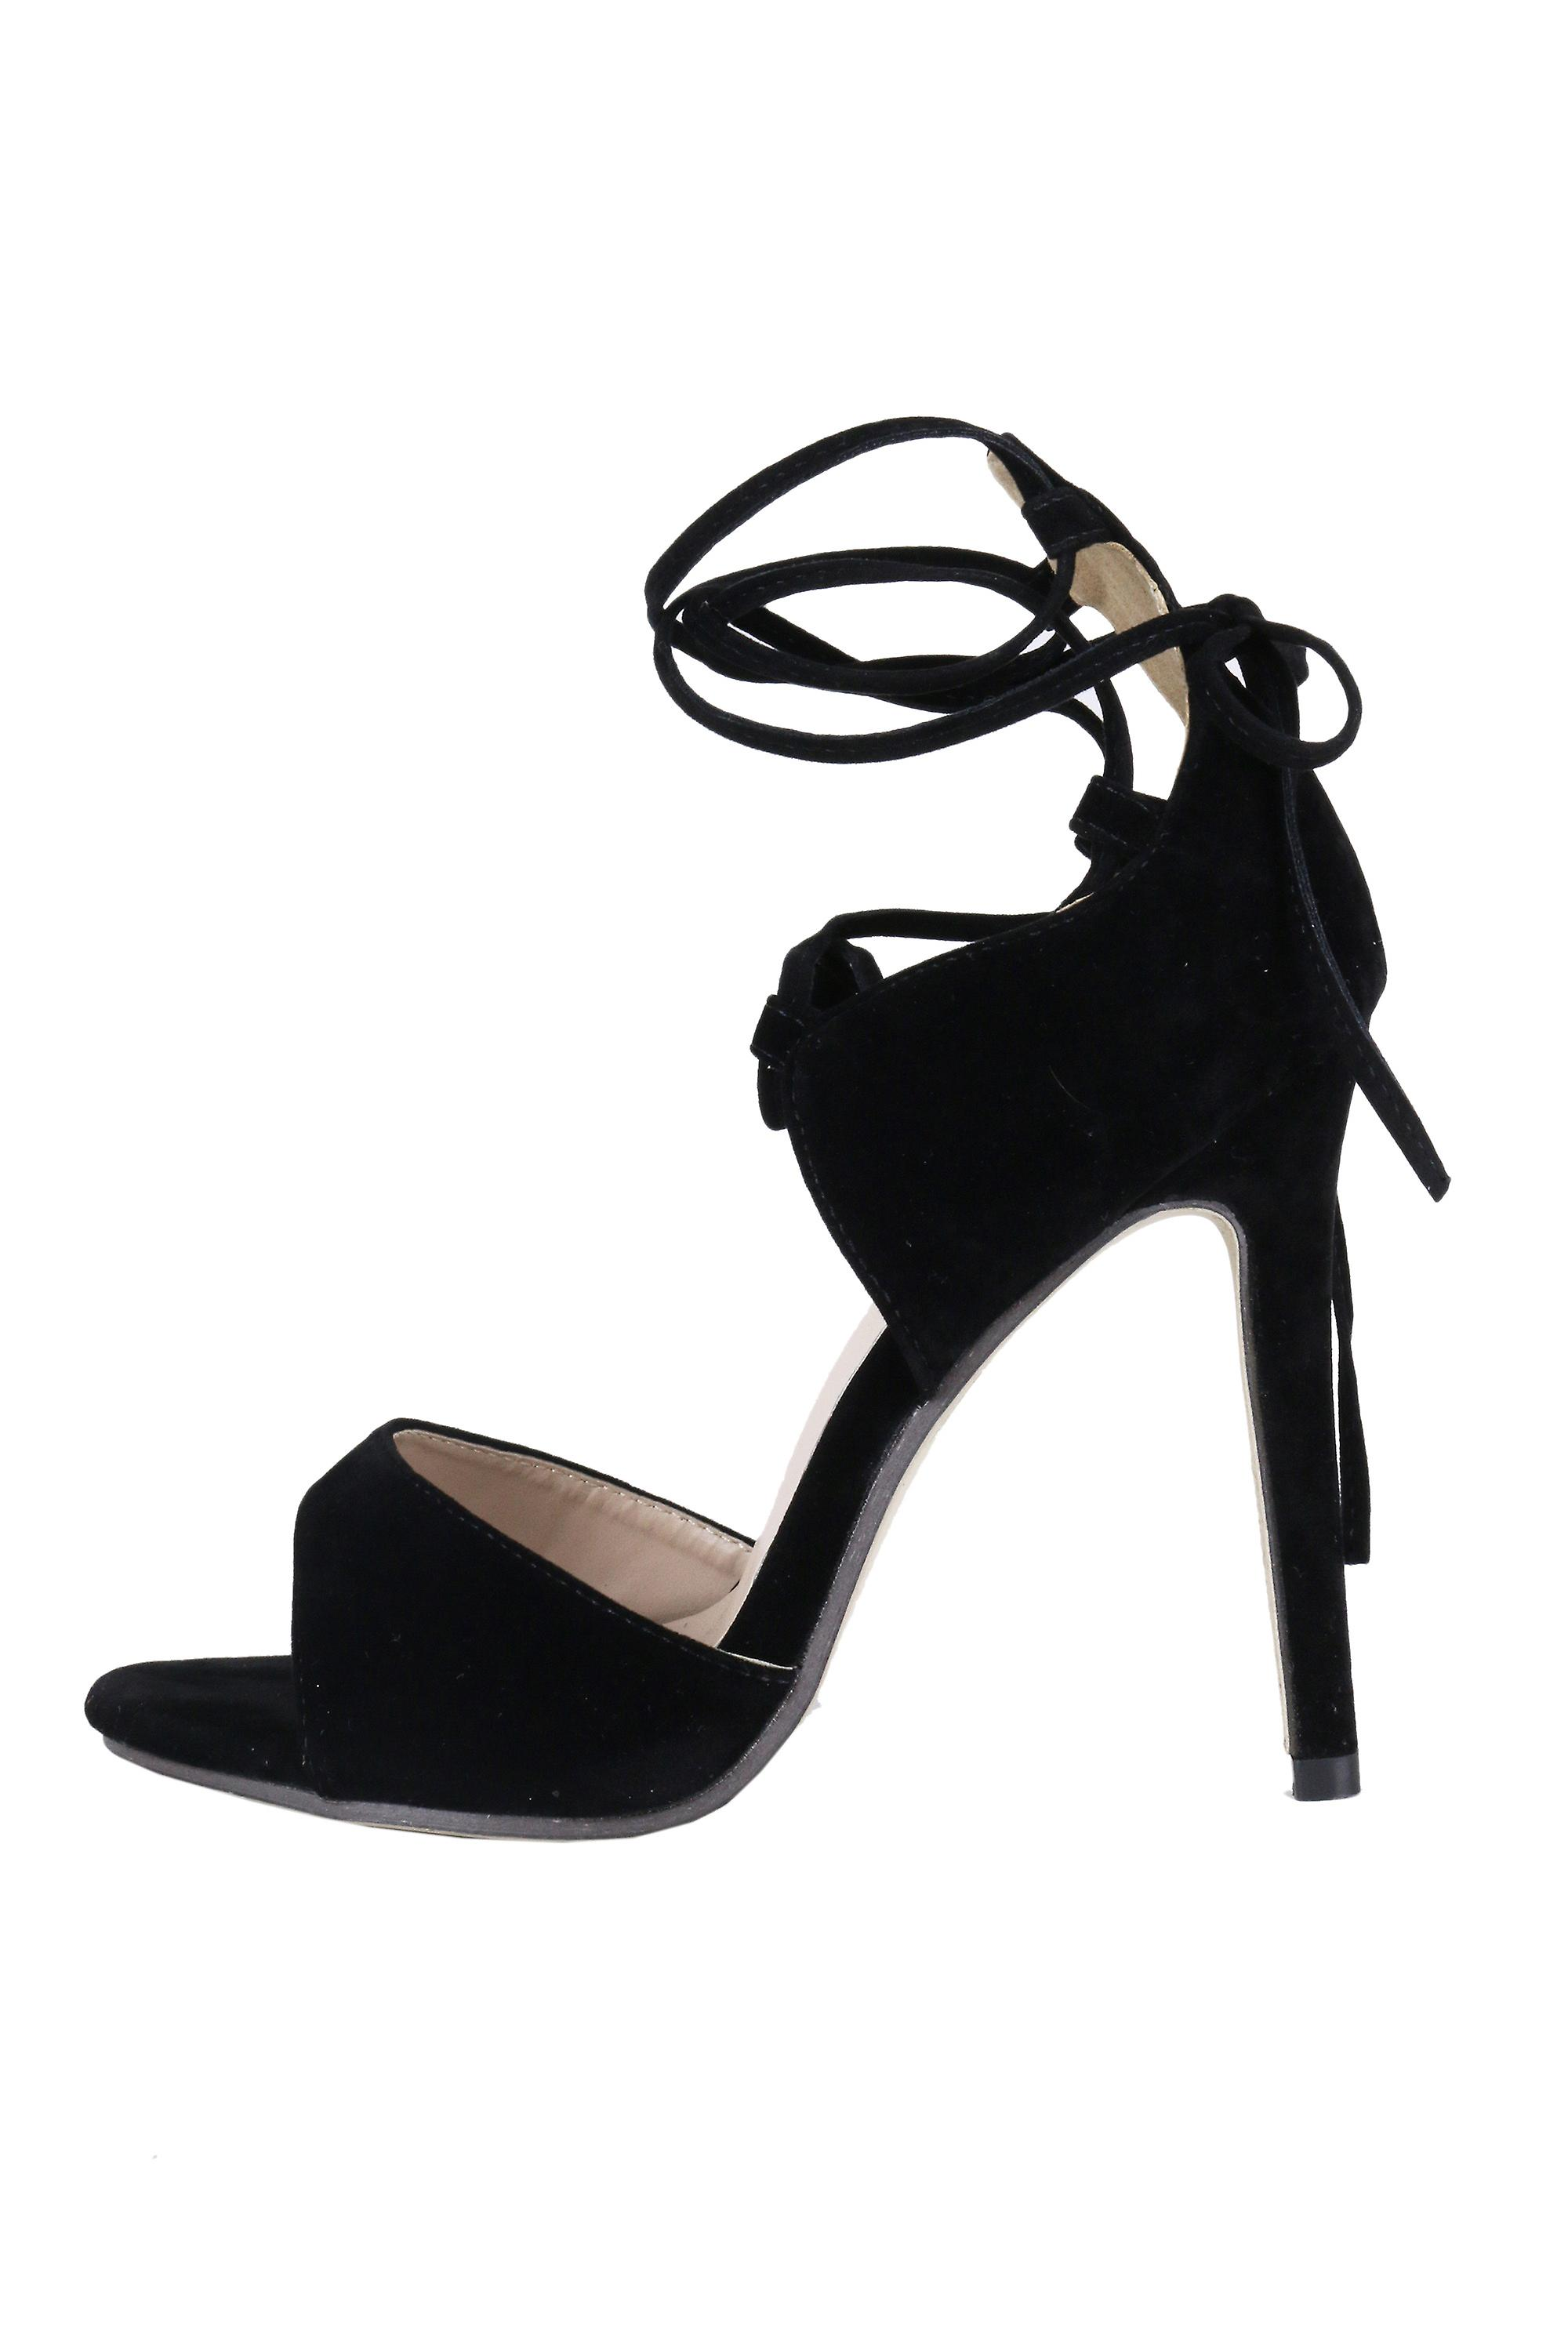 Lovemystyle Suede Ankle Lace Heeled Sandals In Black